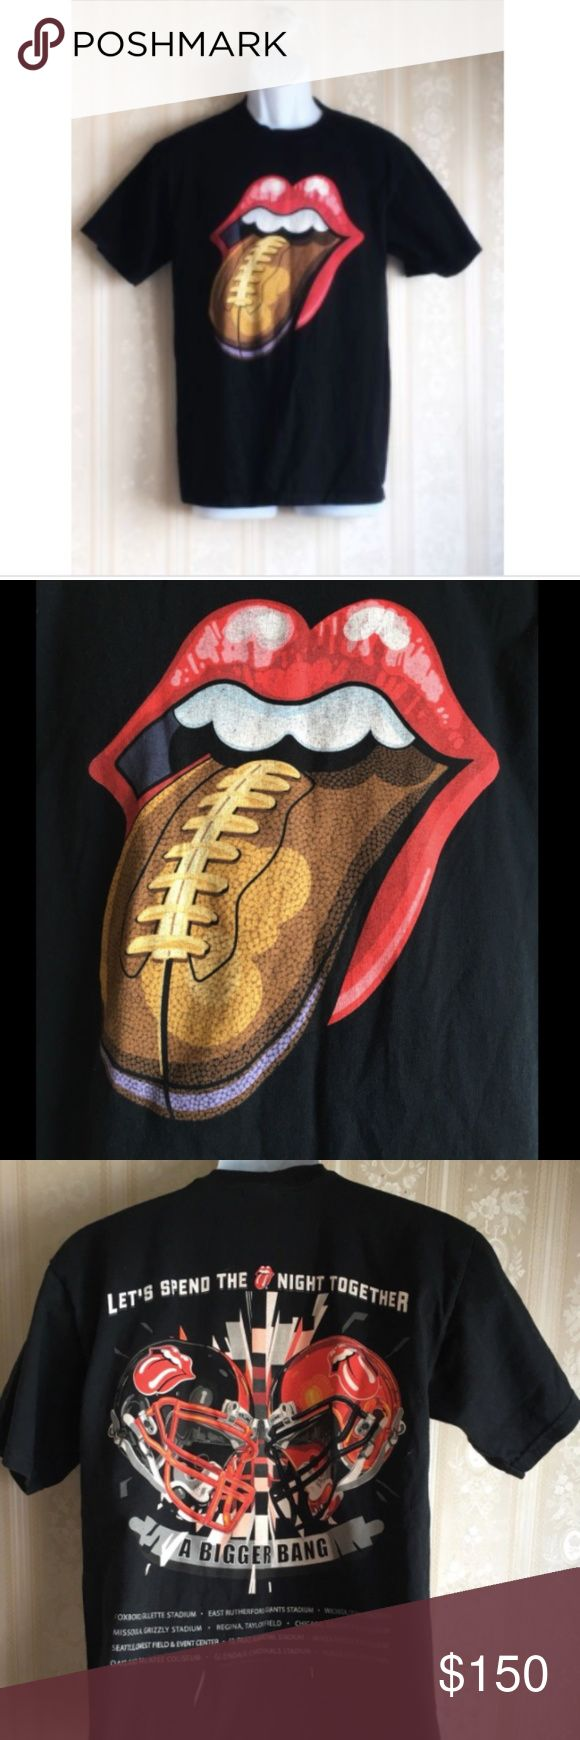 ROLLING STONES 2006 Bigger Bang Concert T-Shirt ROLLING STONES 2006 A Bigger Bang Concert T-Shirt Band Tour Football Tongue Sz M Commemorates tour appearances in following locations: Foxboro, Gillette Stadium. East Rutherford, Giants Stadium. Wichita, Cessna Stadium. Missoula, Grizzly Stadium. Regina, Taylor Field. Chicago, Soldier Field Stadium. Seattle, Qwest Field and Event Center. El Paso, Sun Bowl Stadium. Vancouver, B.C., Place Stadium. Oakland, McAfee Colosseum. Glendale, Cardinals…